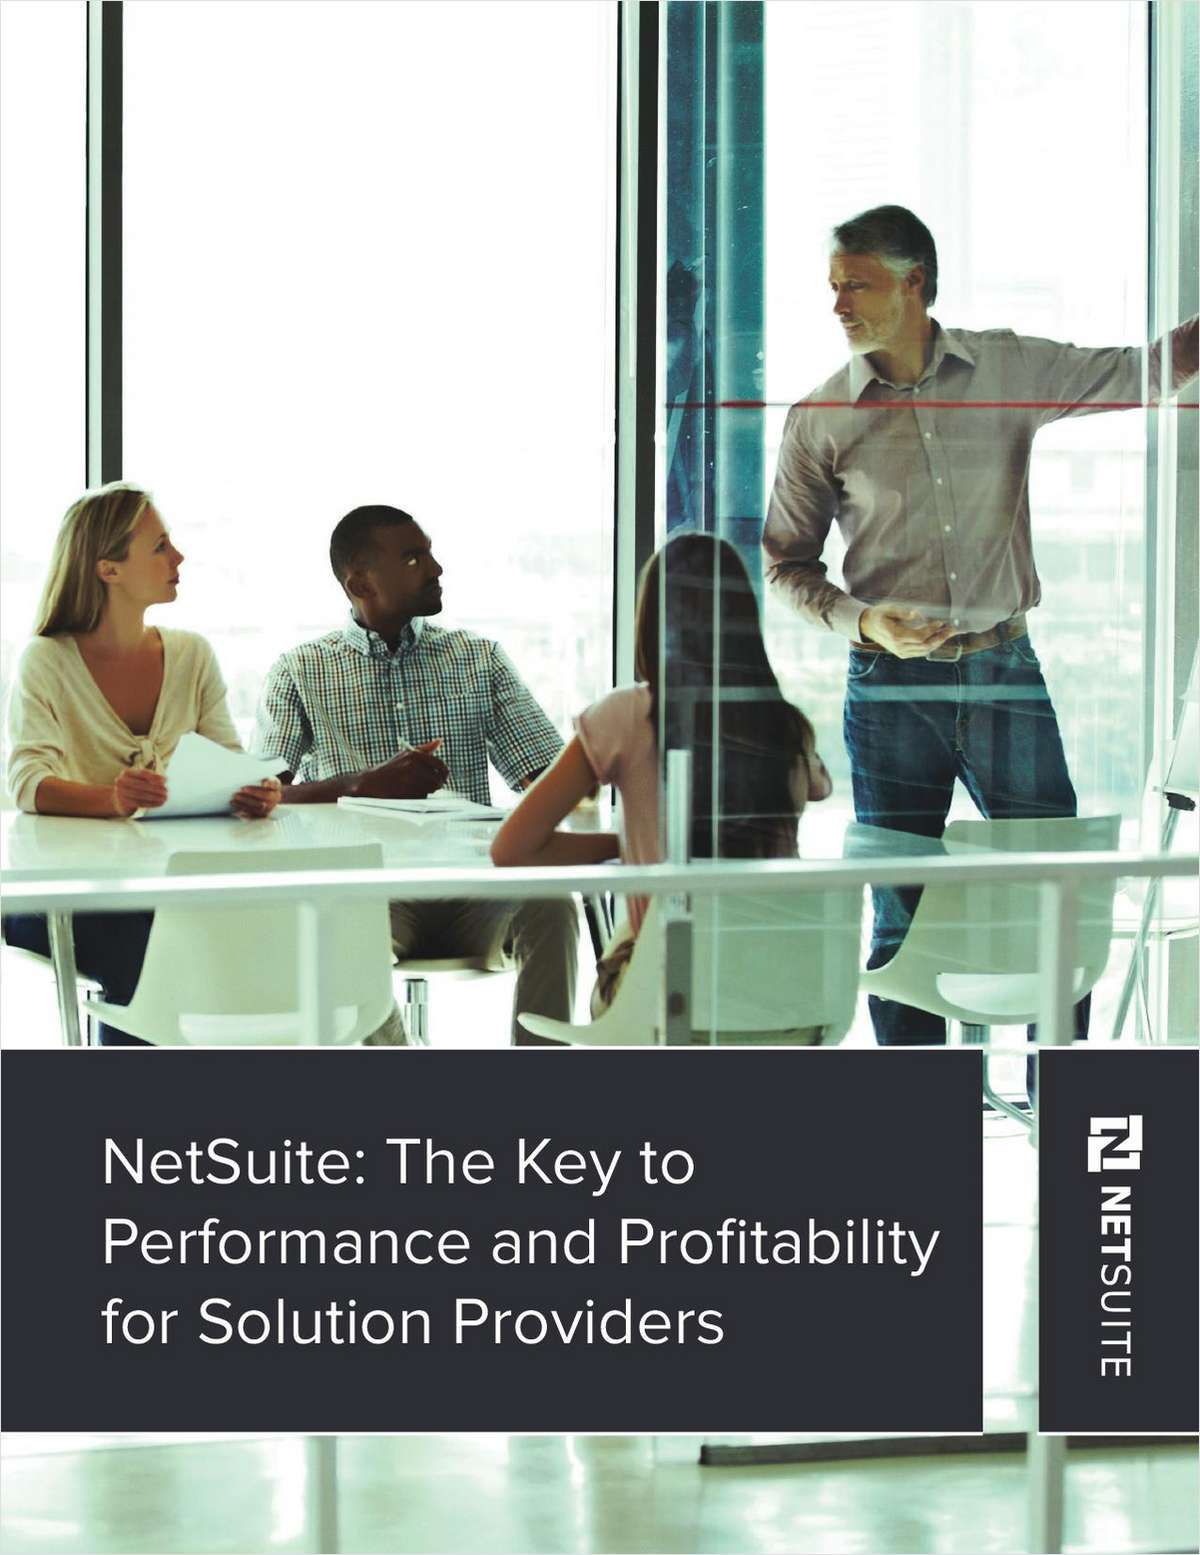 NetSuite: The Key to Performance and Profitability for Solution Providers